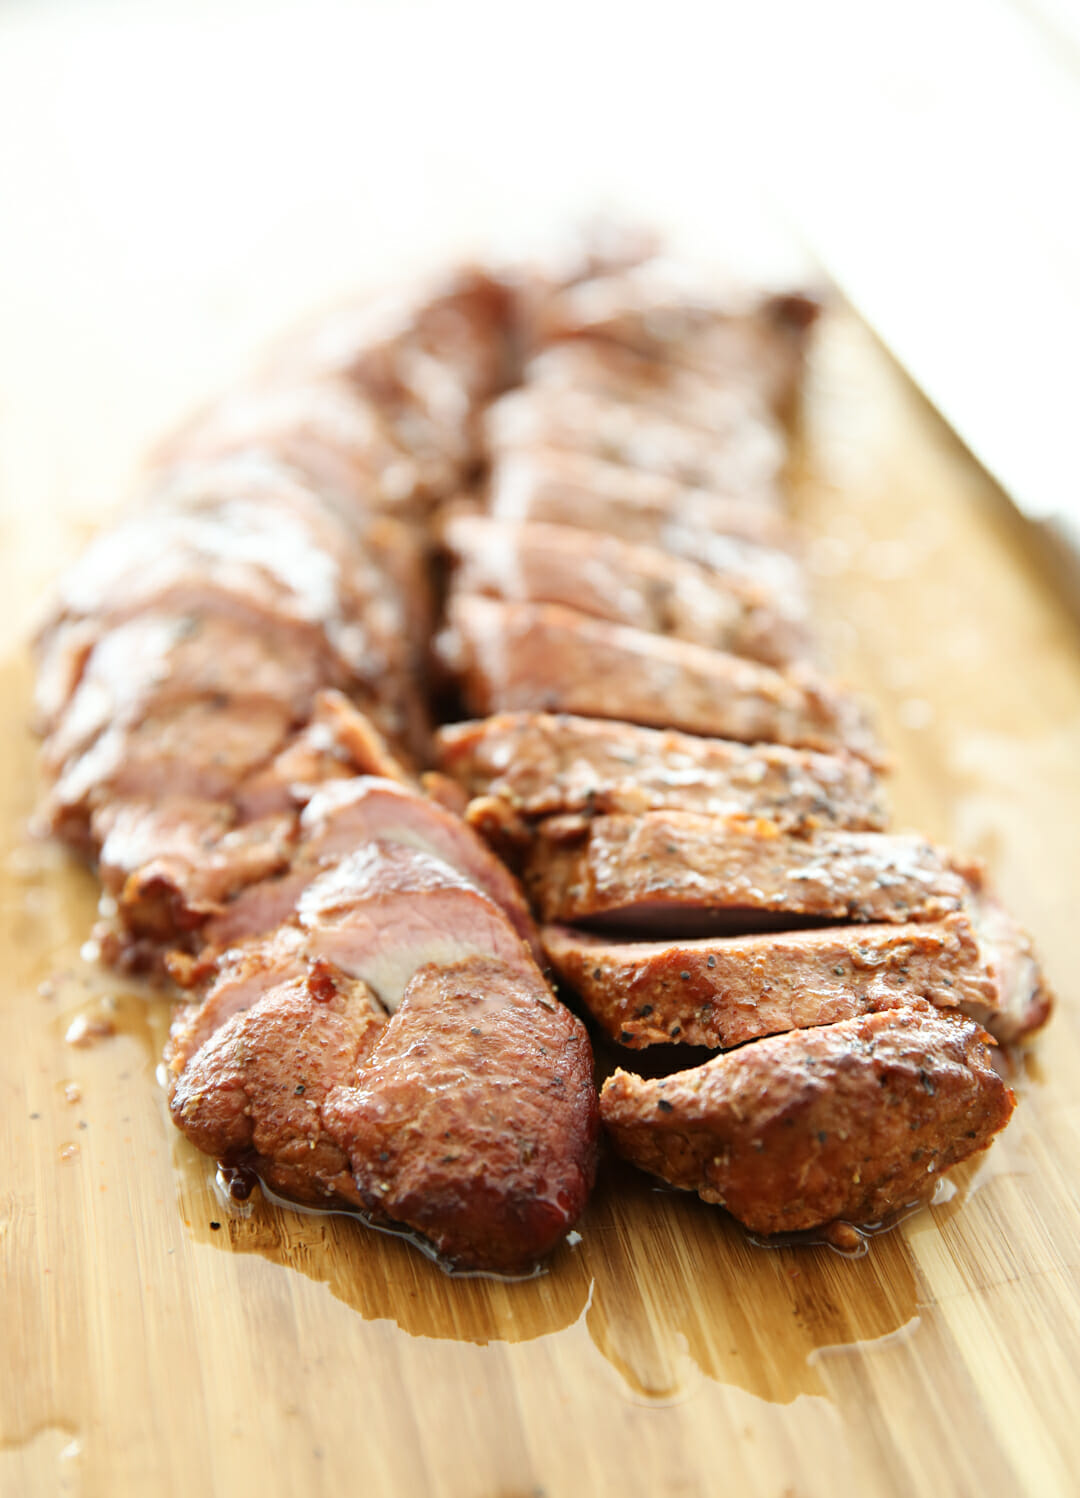 Smoked Pork Tenderloin Recipe on Cutting Board